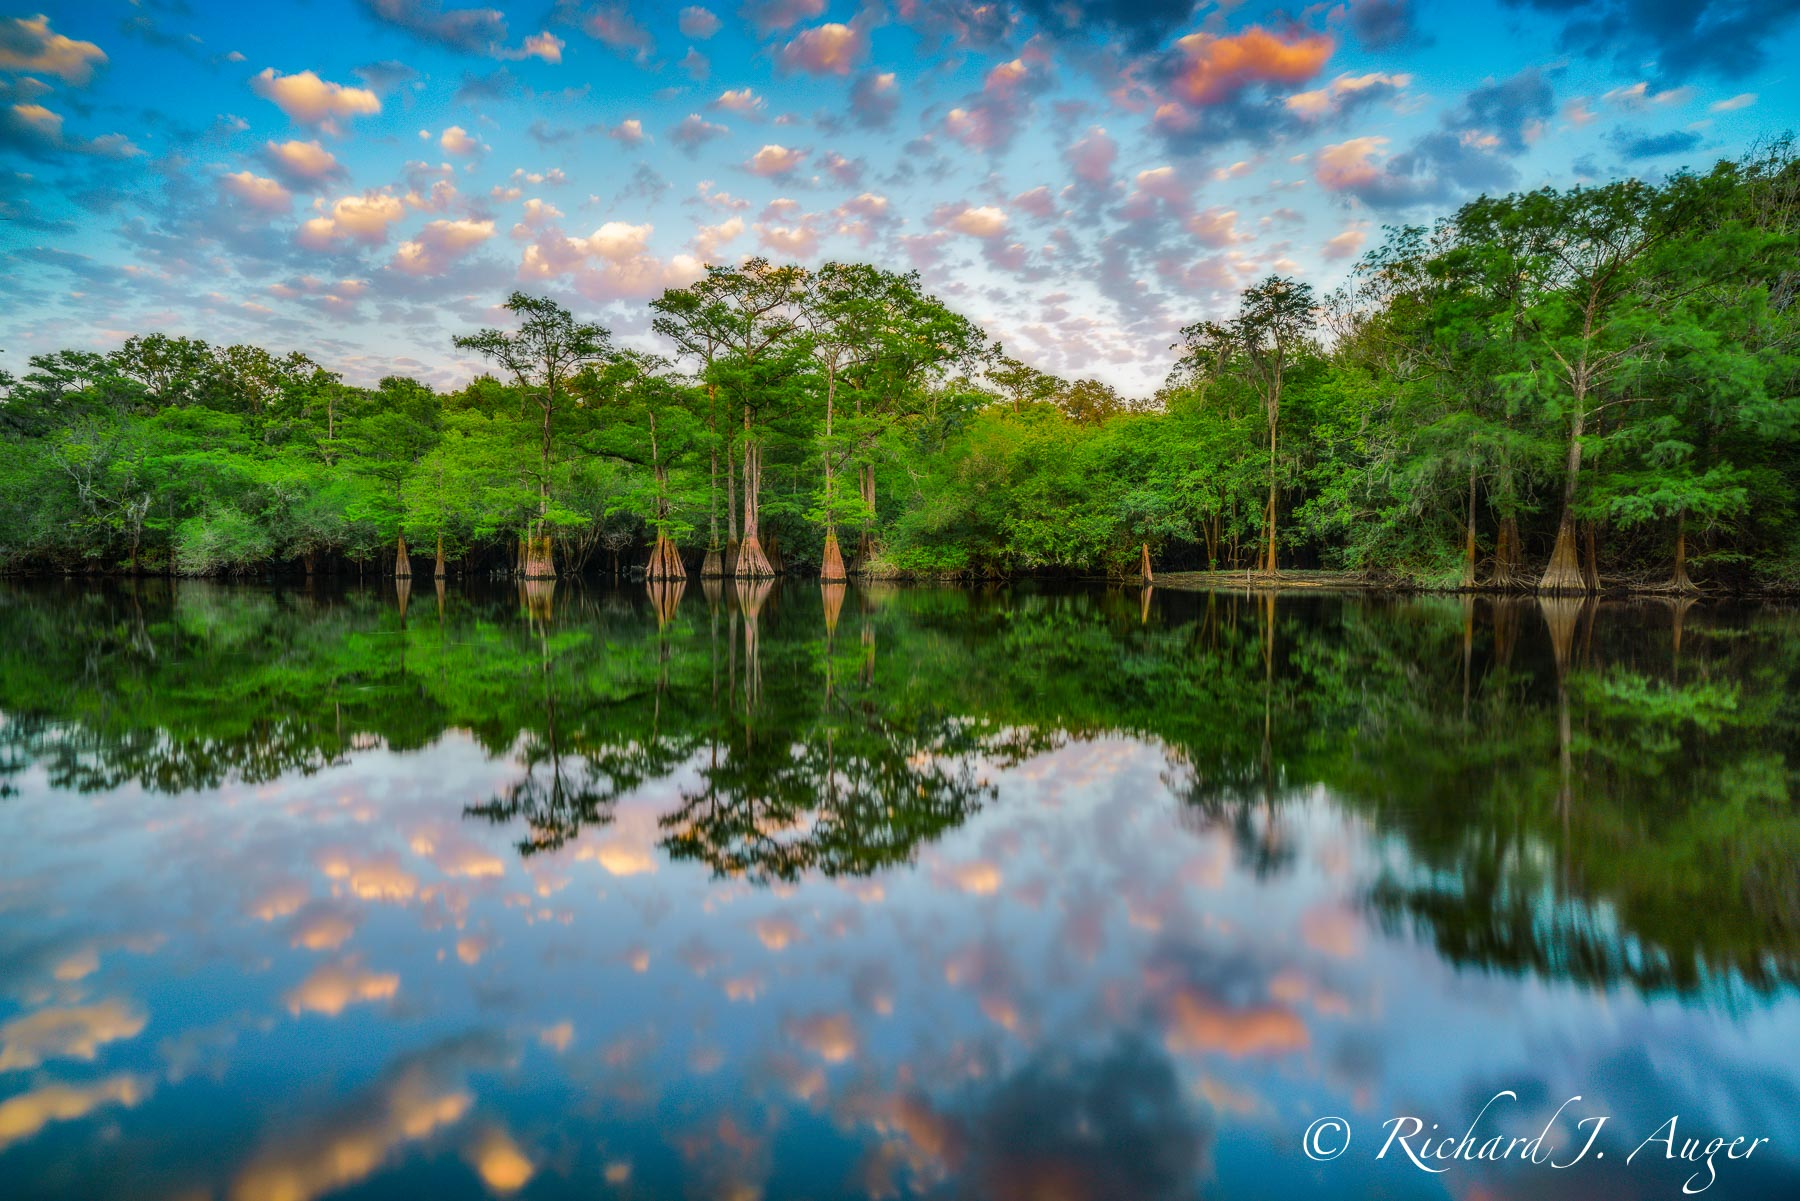 Santa Fe River, Florida, Sunset, Orange, Blue, Clouds, Cypress, Water, Photograph, Photographer, Nature, Landscape